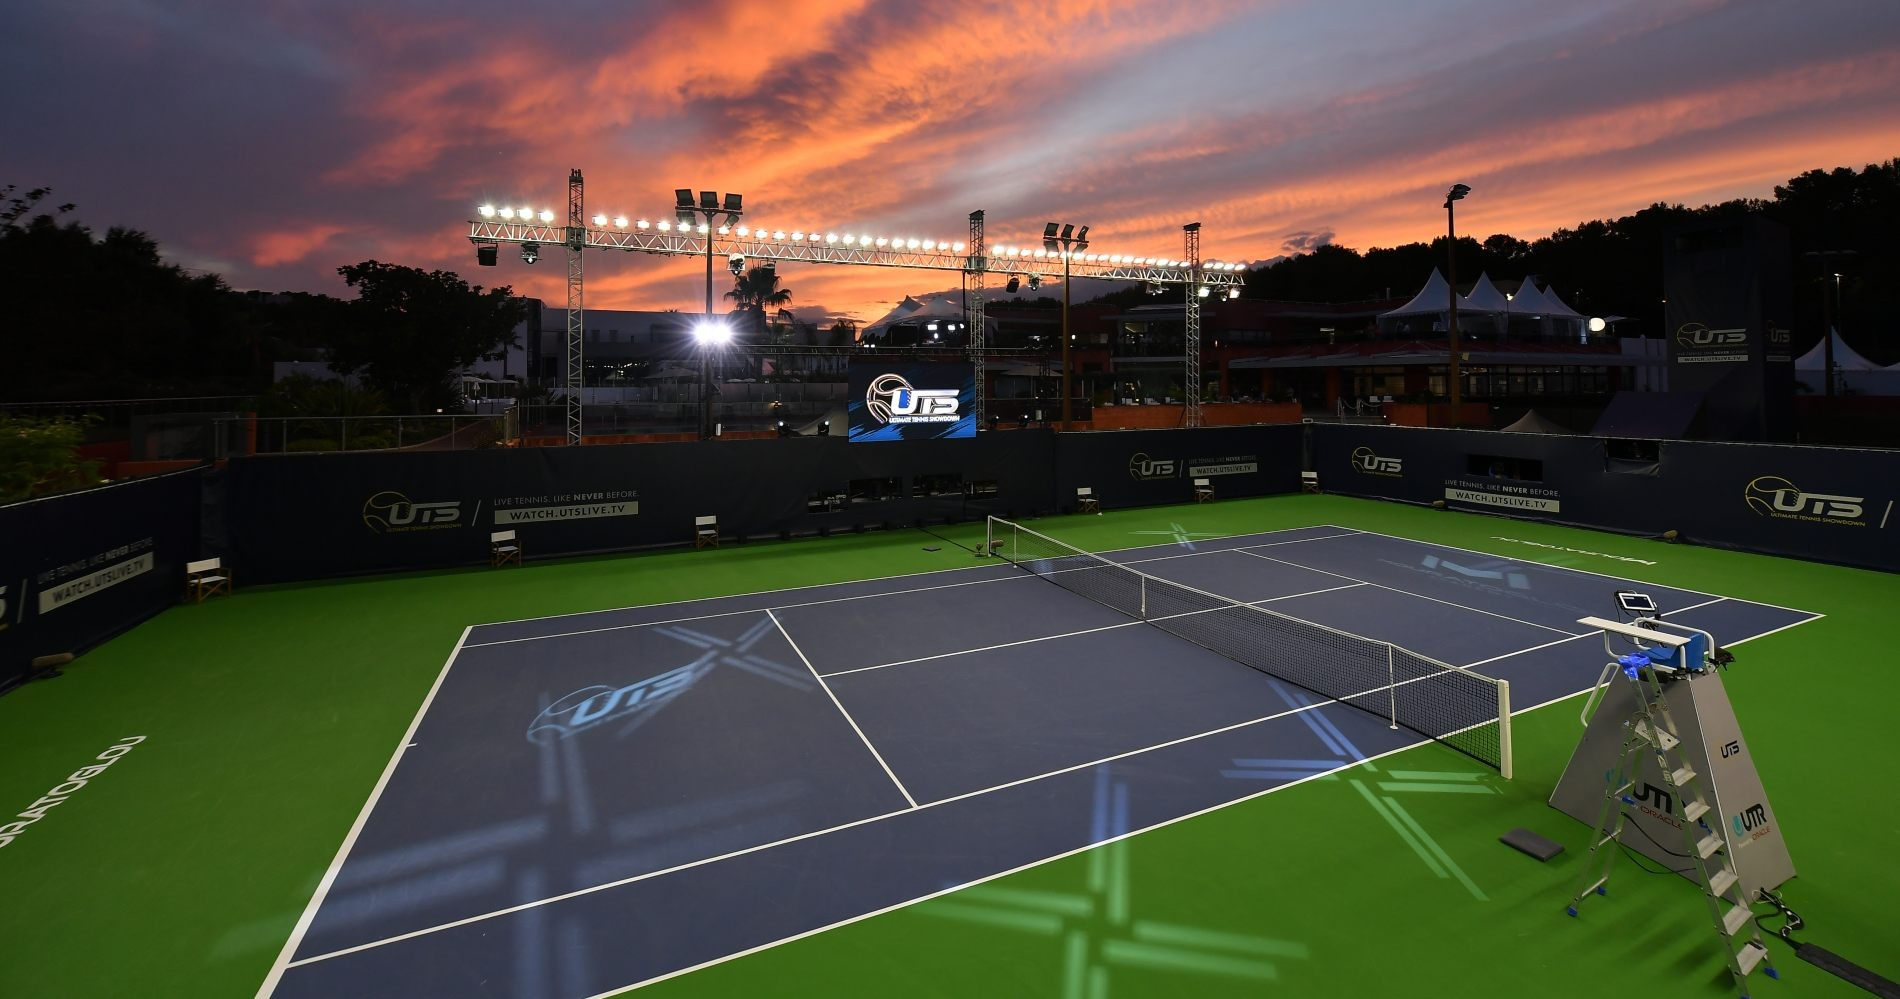 Court central - Mouratoglou Tennis Academy - UTS